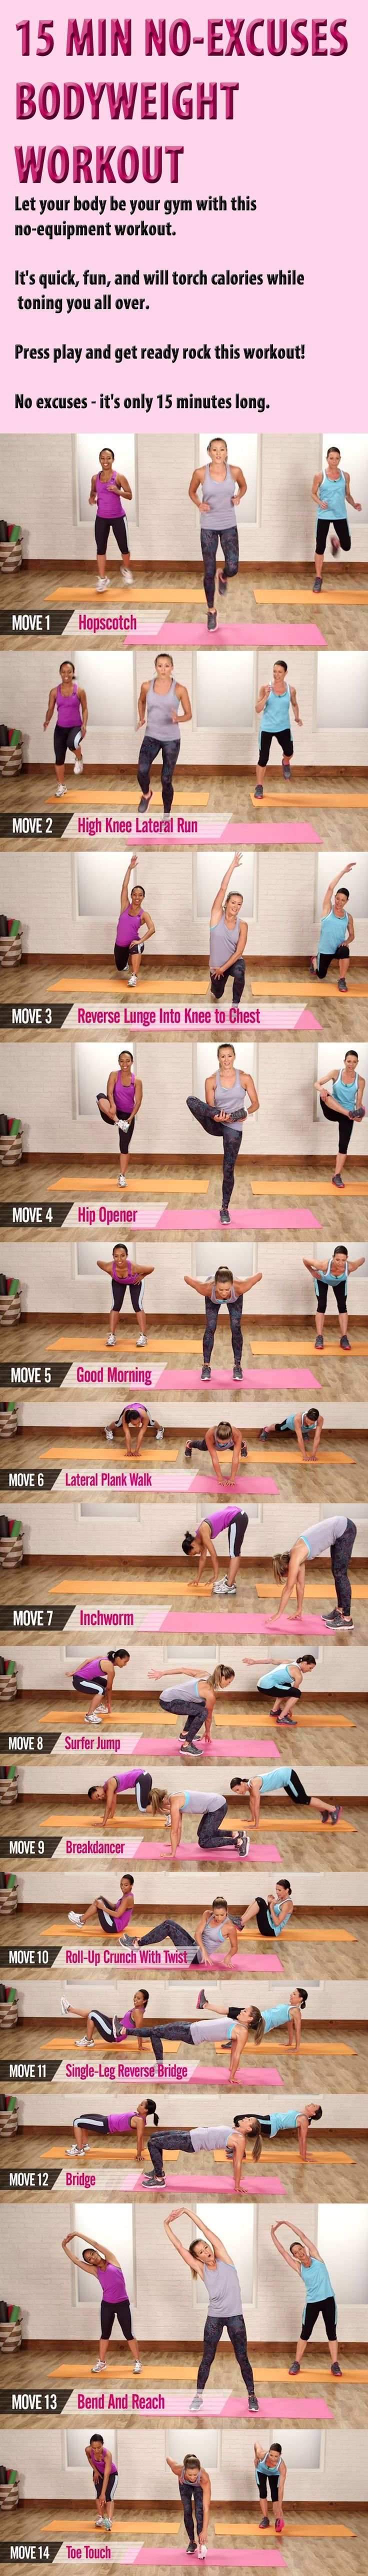 15- Minute No-Excuses Bodyweight Workout